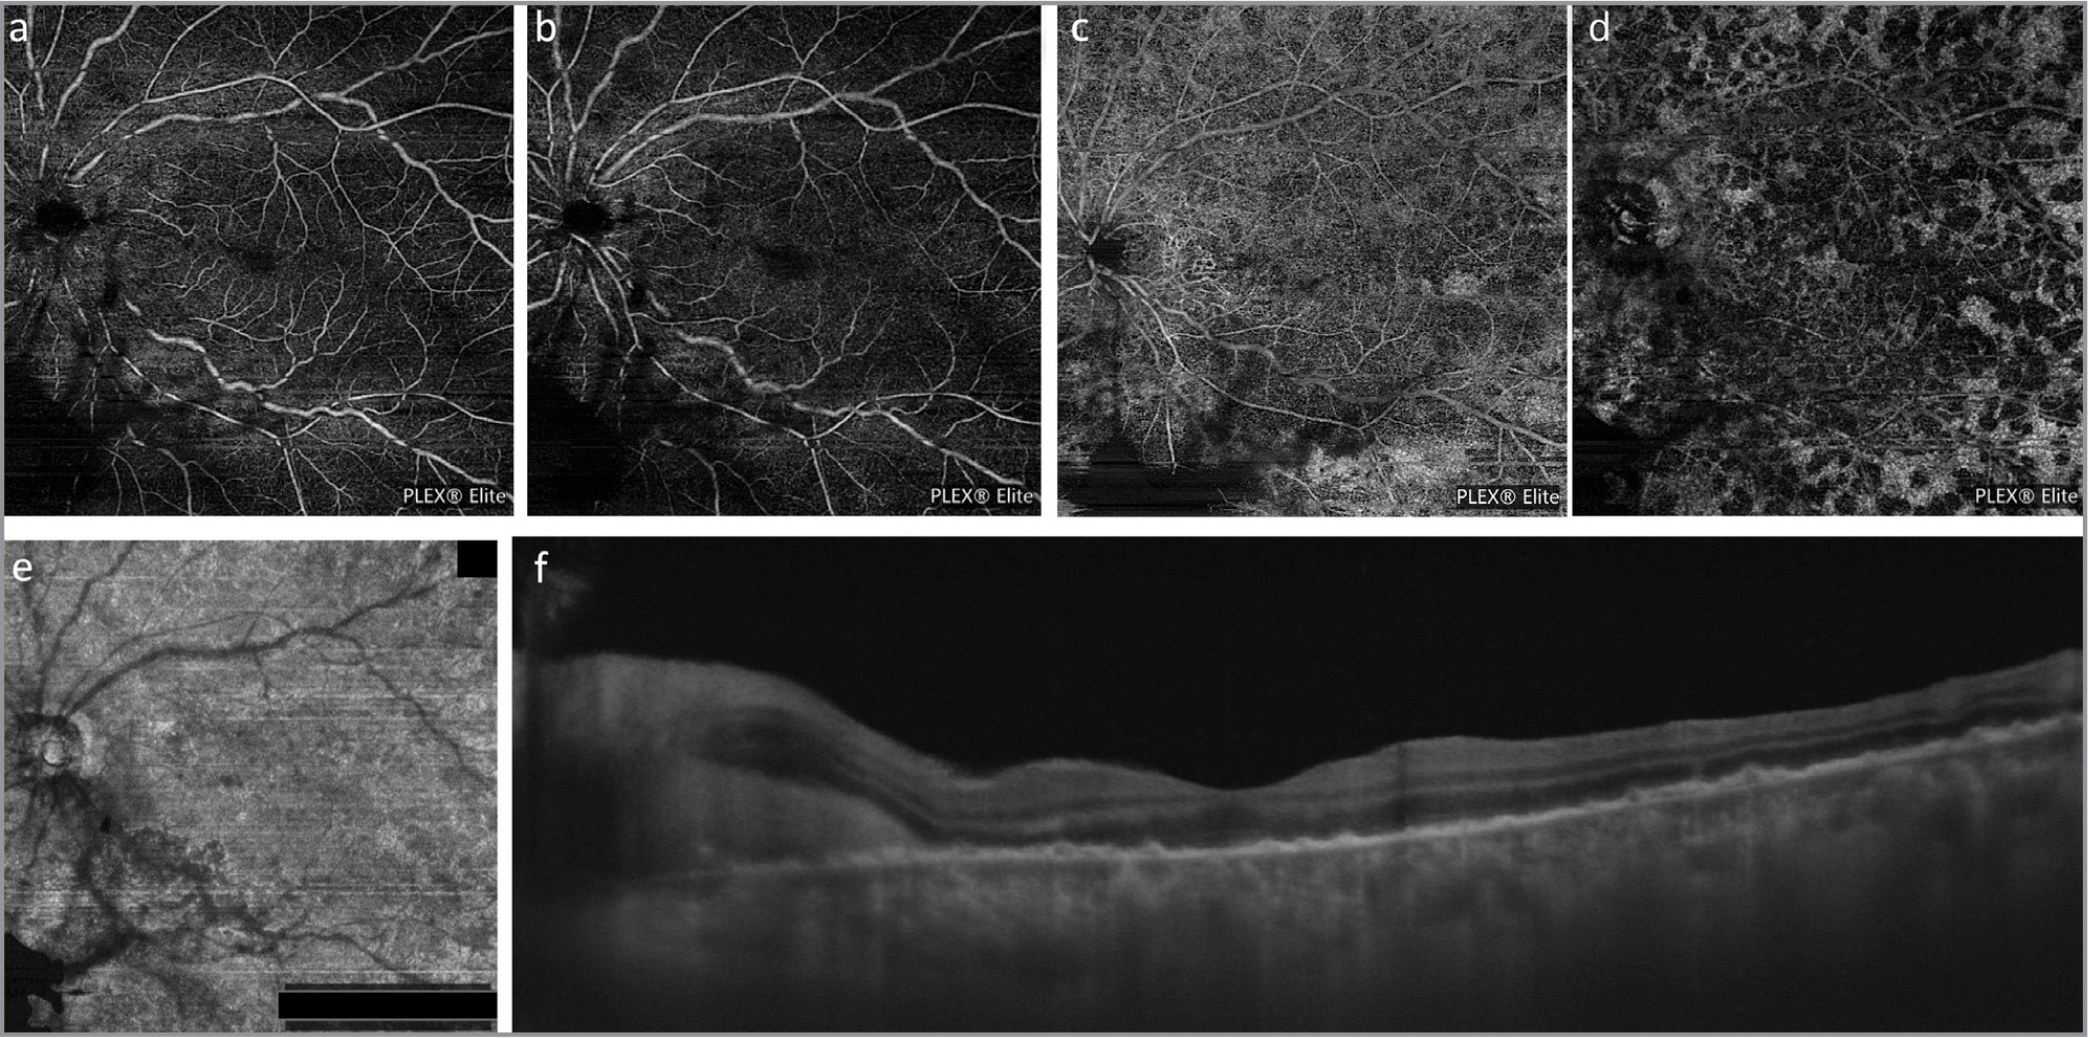 Swept-source optical coherence tomography (OCTA) 12 mm × 12 mm scan at the level of the superficial (a) and deep capillary plexus (b) does not show any structural retinal abnormality. At the level of the outer retina to choriocapillaris slab, (c) multiple dark spots are seen, and OCTA slab at the level of choriocapillaris (c) also shows presence of multiple dark areas scattered all across the posterior pole. Corresponding en face OCTA does not reveal any segmentation or structural abnormality (e). There is, however, an overlying shadow artifact due to vitreous opacities, which projects on all the slabs (a–e). Enhanced depth imaging OCT (f) shows multiple retinal pigment epithelium drusenoid-like elevations, peripapillary subretinal hyperreflective material, and a thickened choroid.